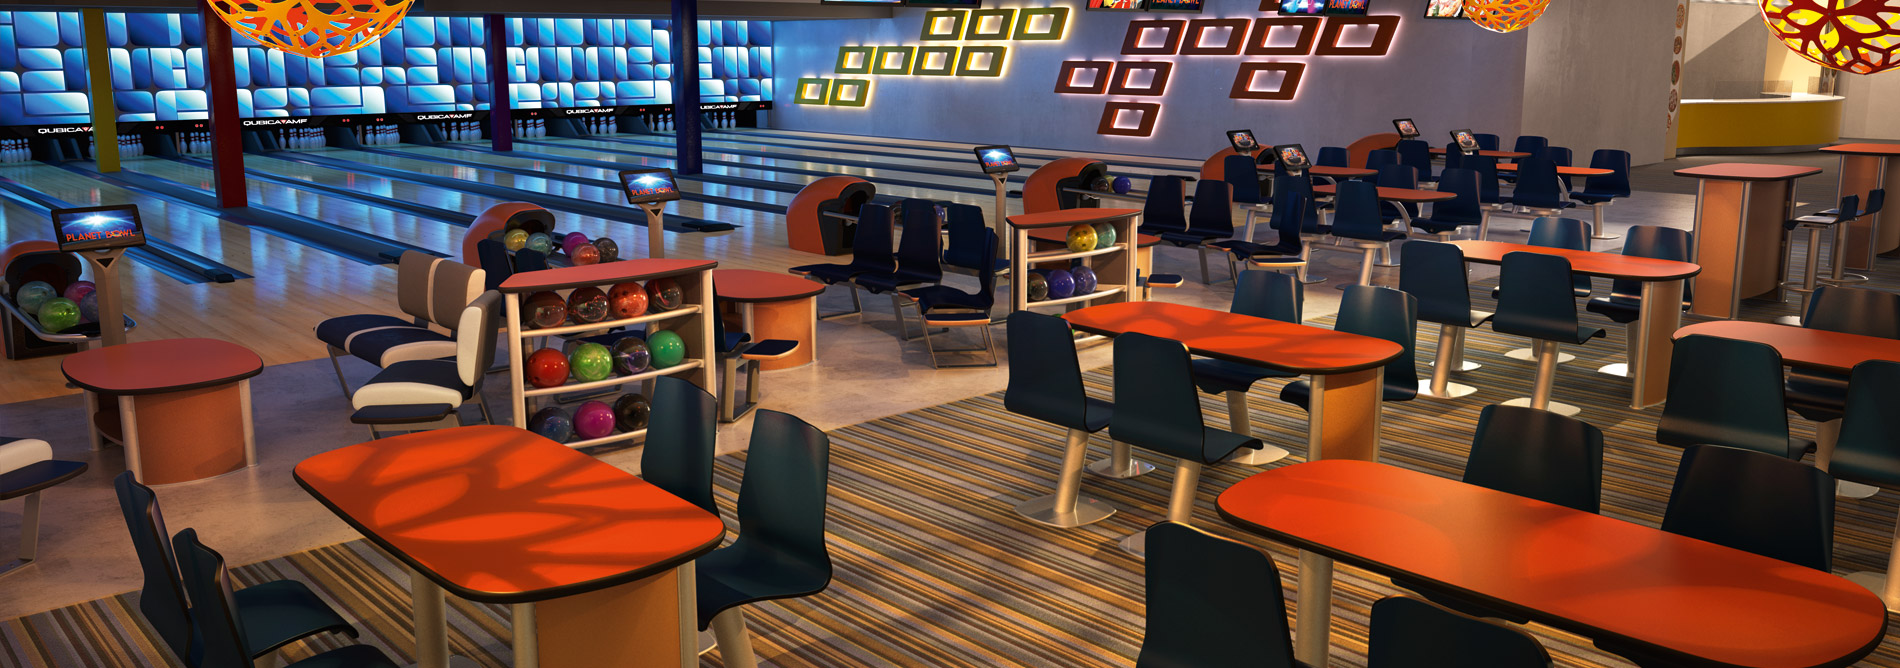 Bowling-QubicaAMF-furniture-harmony-energy-banner2.jpg